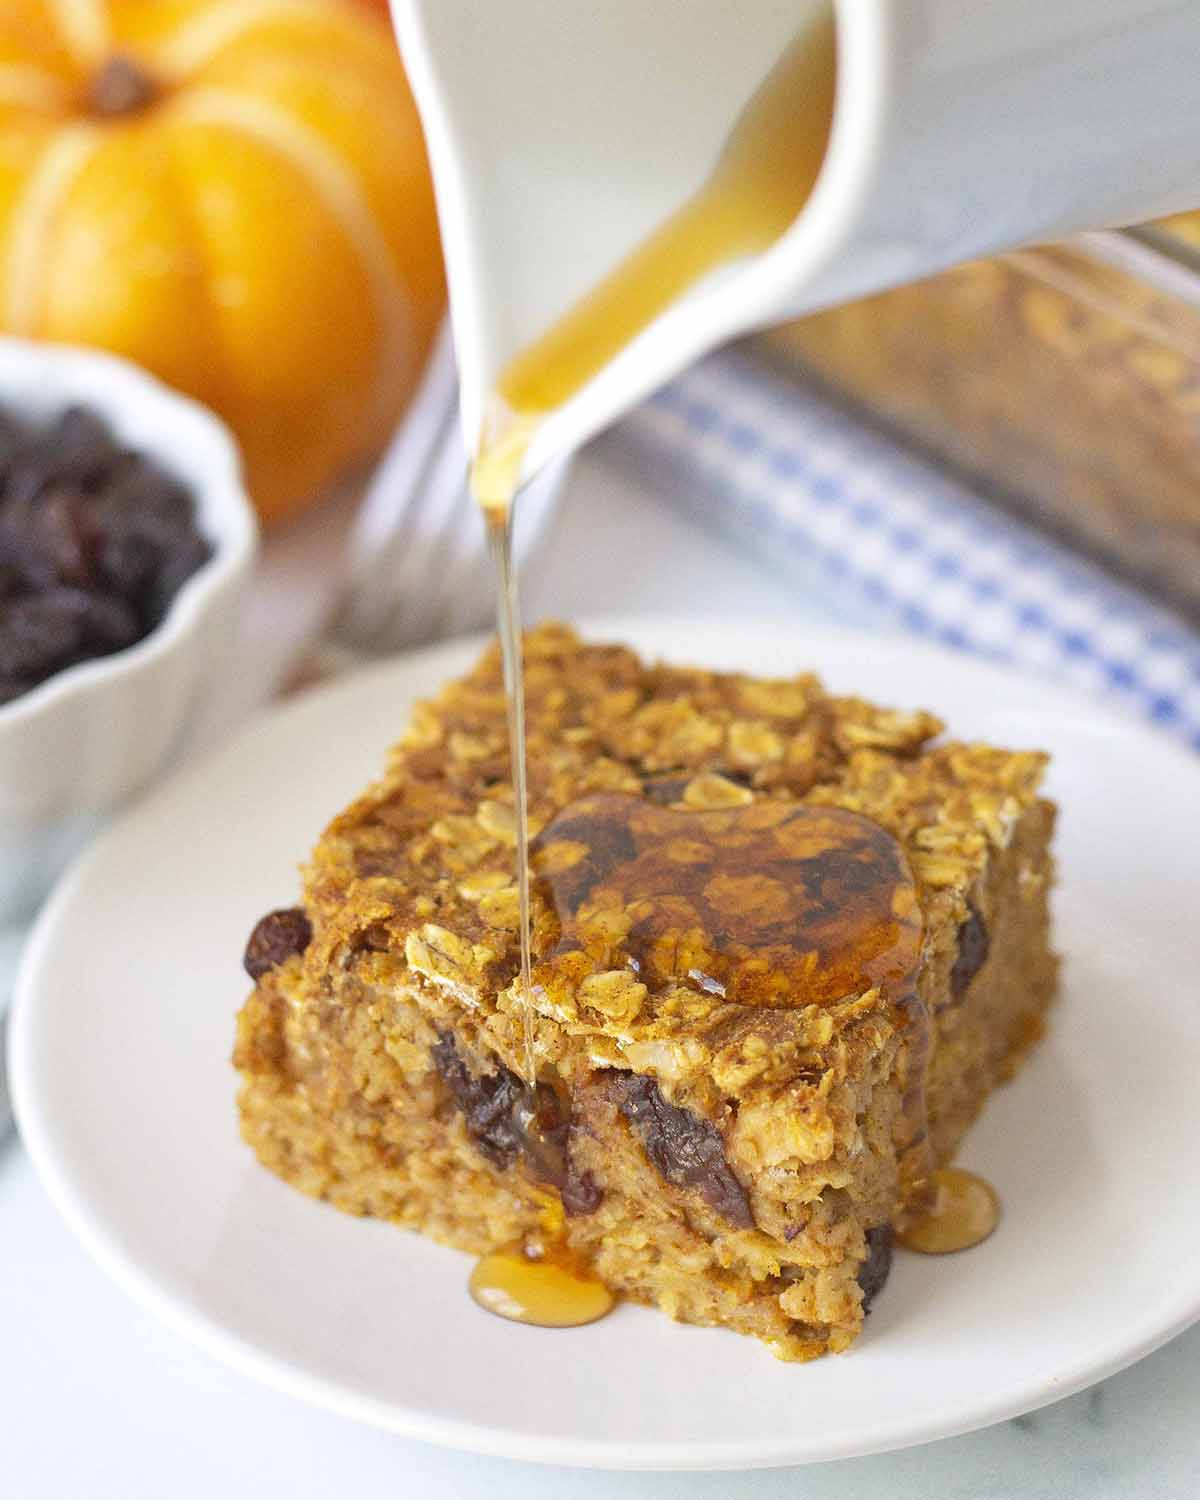 Maple syrup being poured onto a slice of vegan pumpkin spice baked oatmeal.